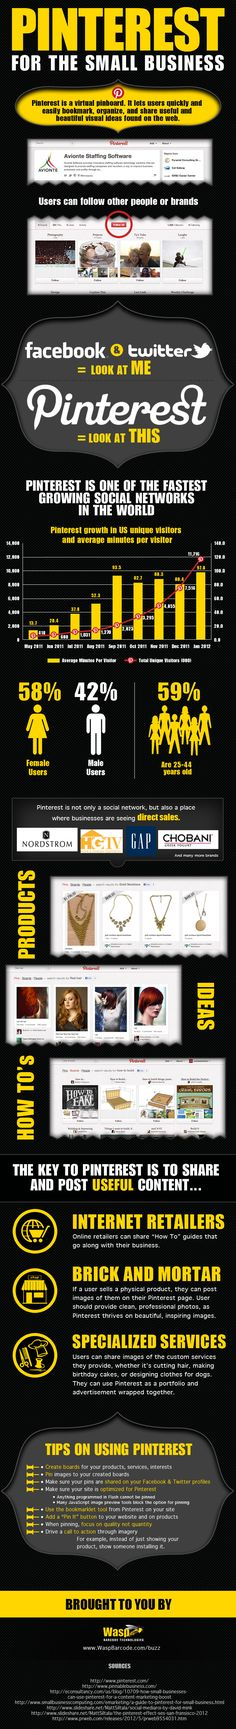 Pinterest 101 for Business This is a great #infographic about why Pinterest is such a good choice for businesses.